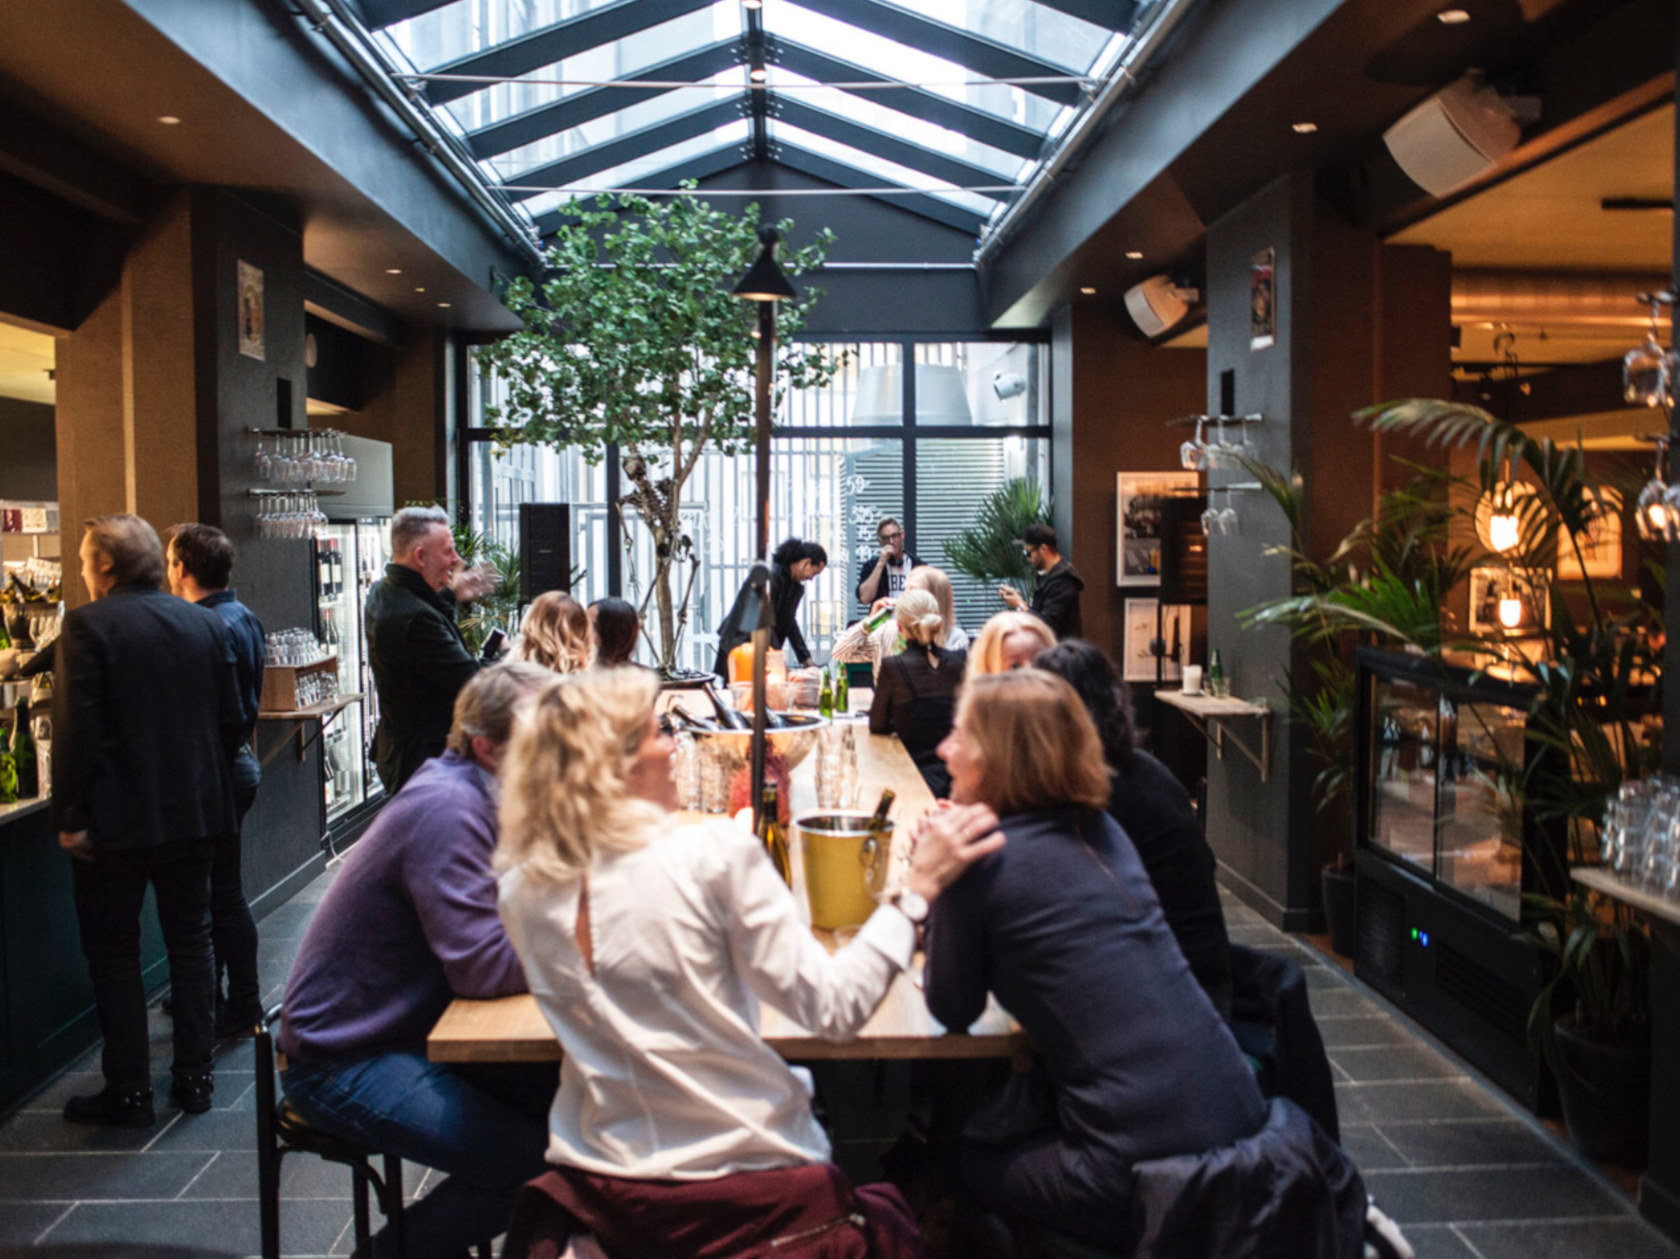 Rodins Bistro & Bar: A Work-Friendly Place in Oslo